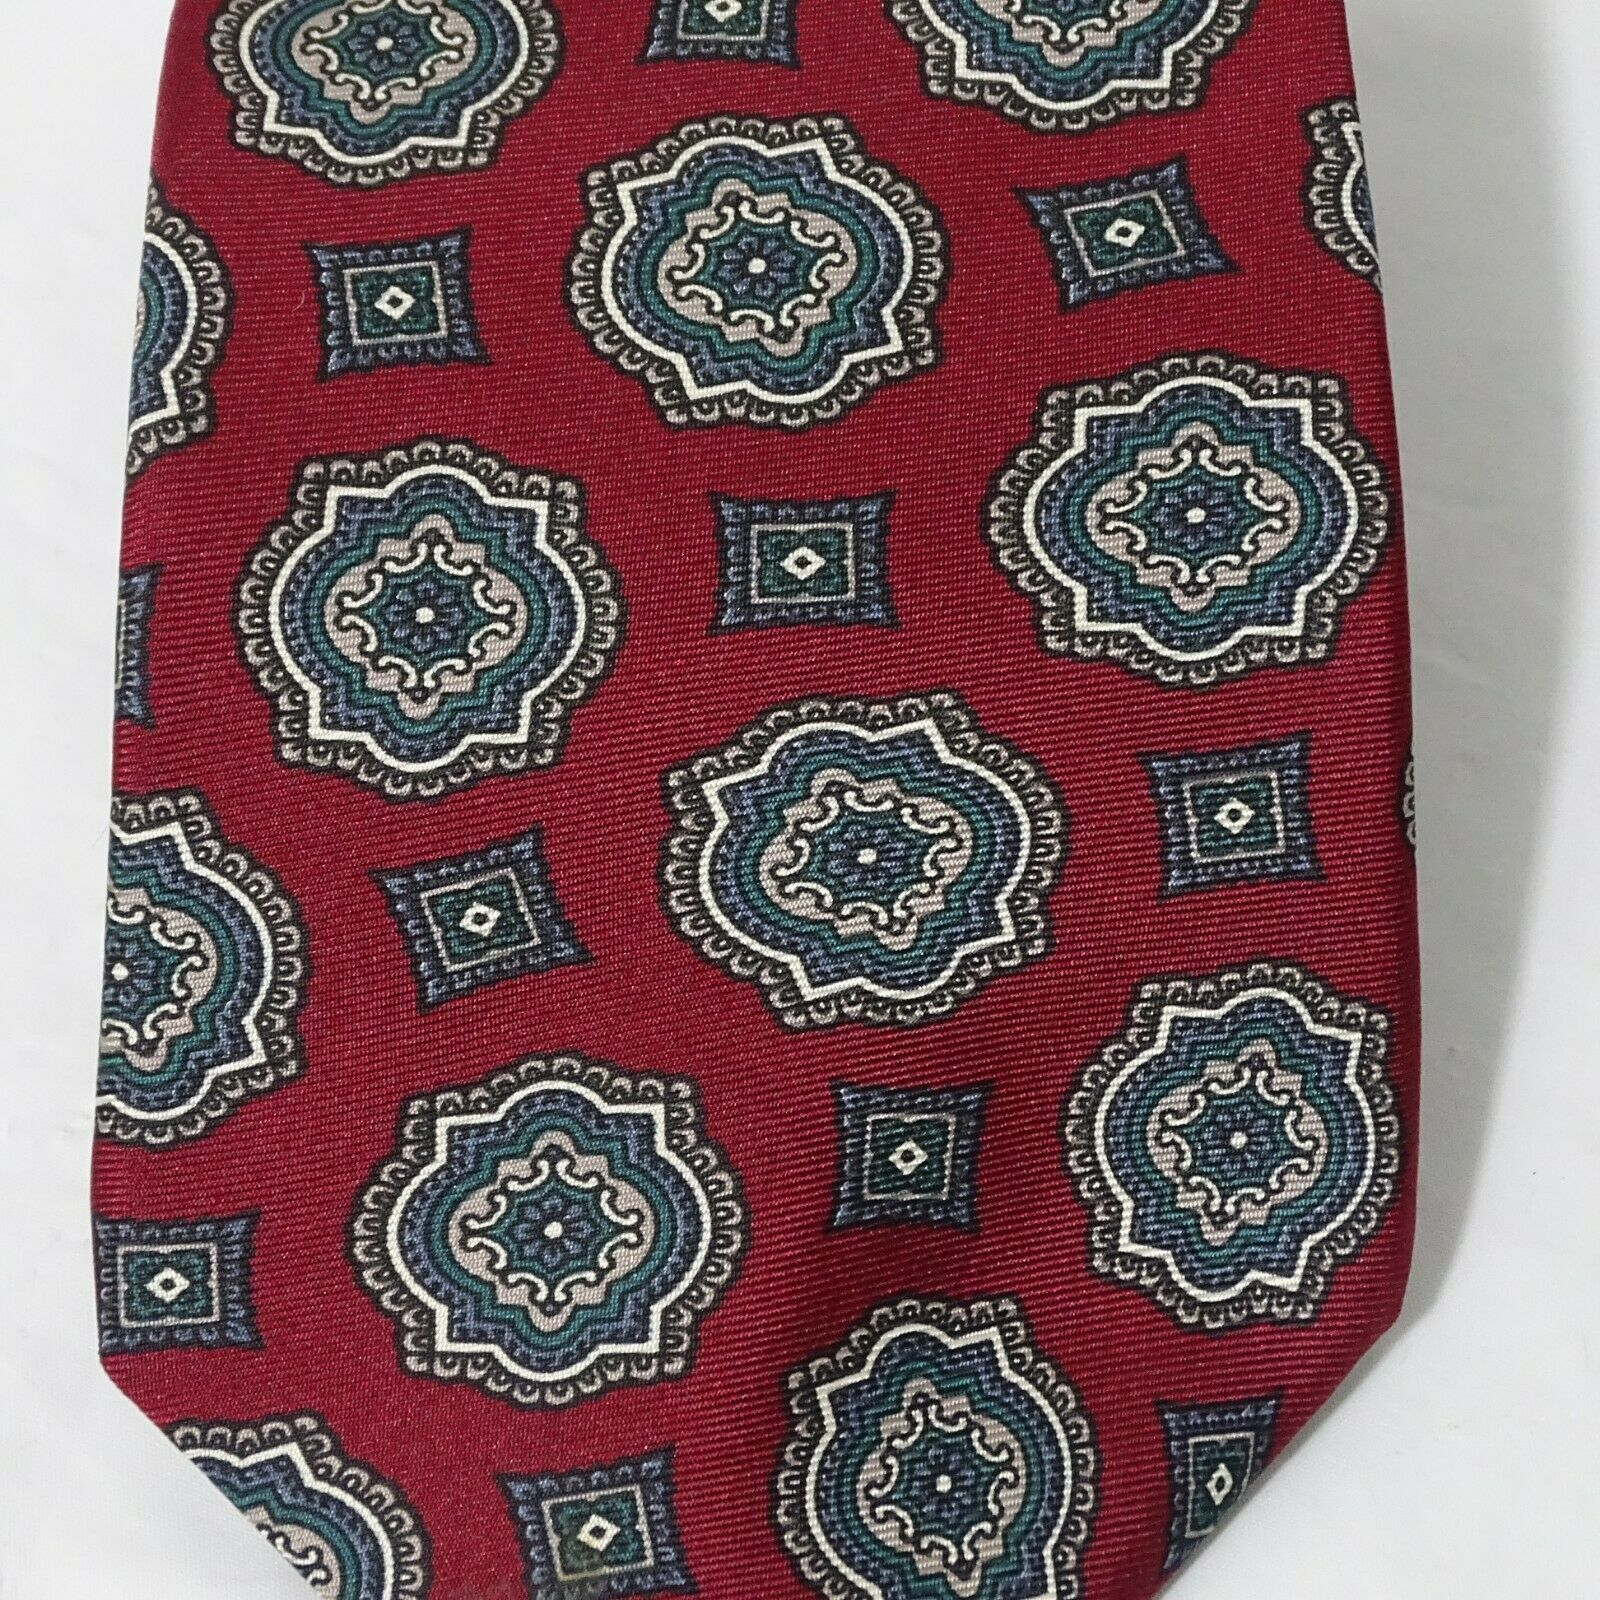 Wembley Tie Men Necktie Classic Burgundy Red Geometric 57 inch 3.5 inch